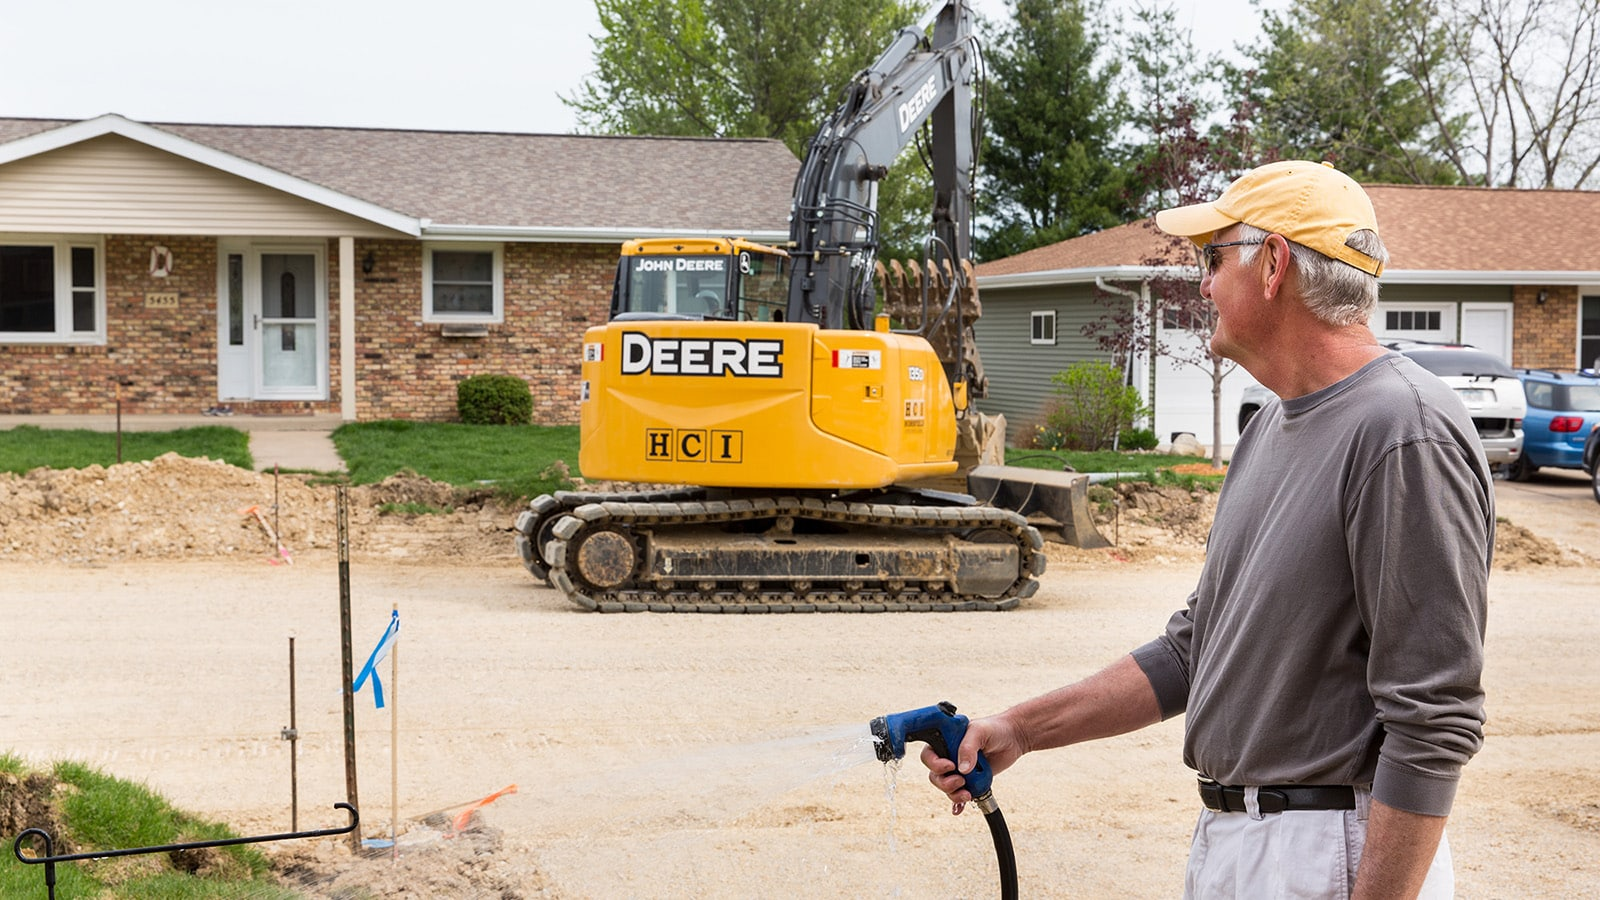 135D Excavator works in a residential neighborhood in Dubuque while a neighbor watering the lawn watches.